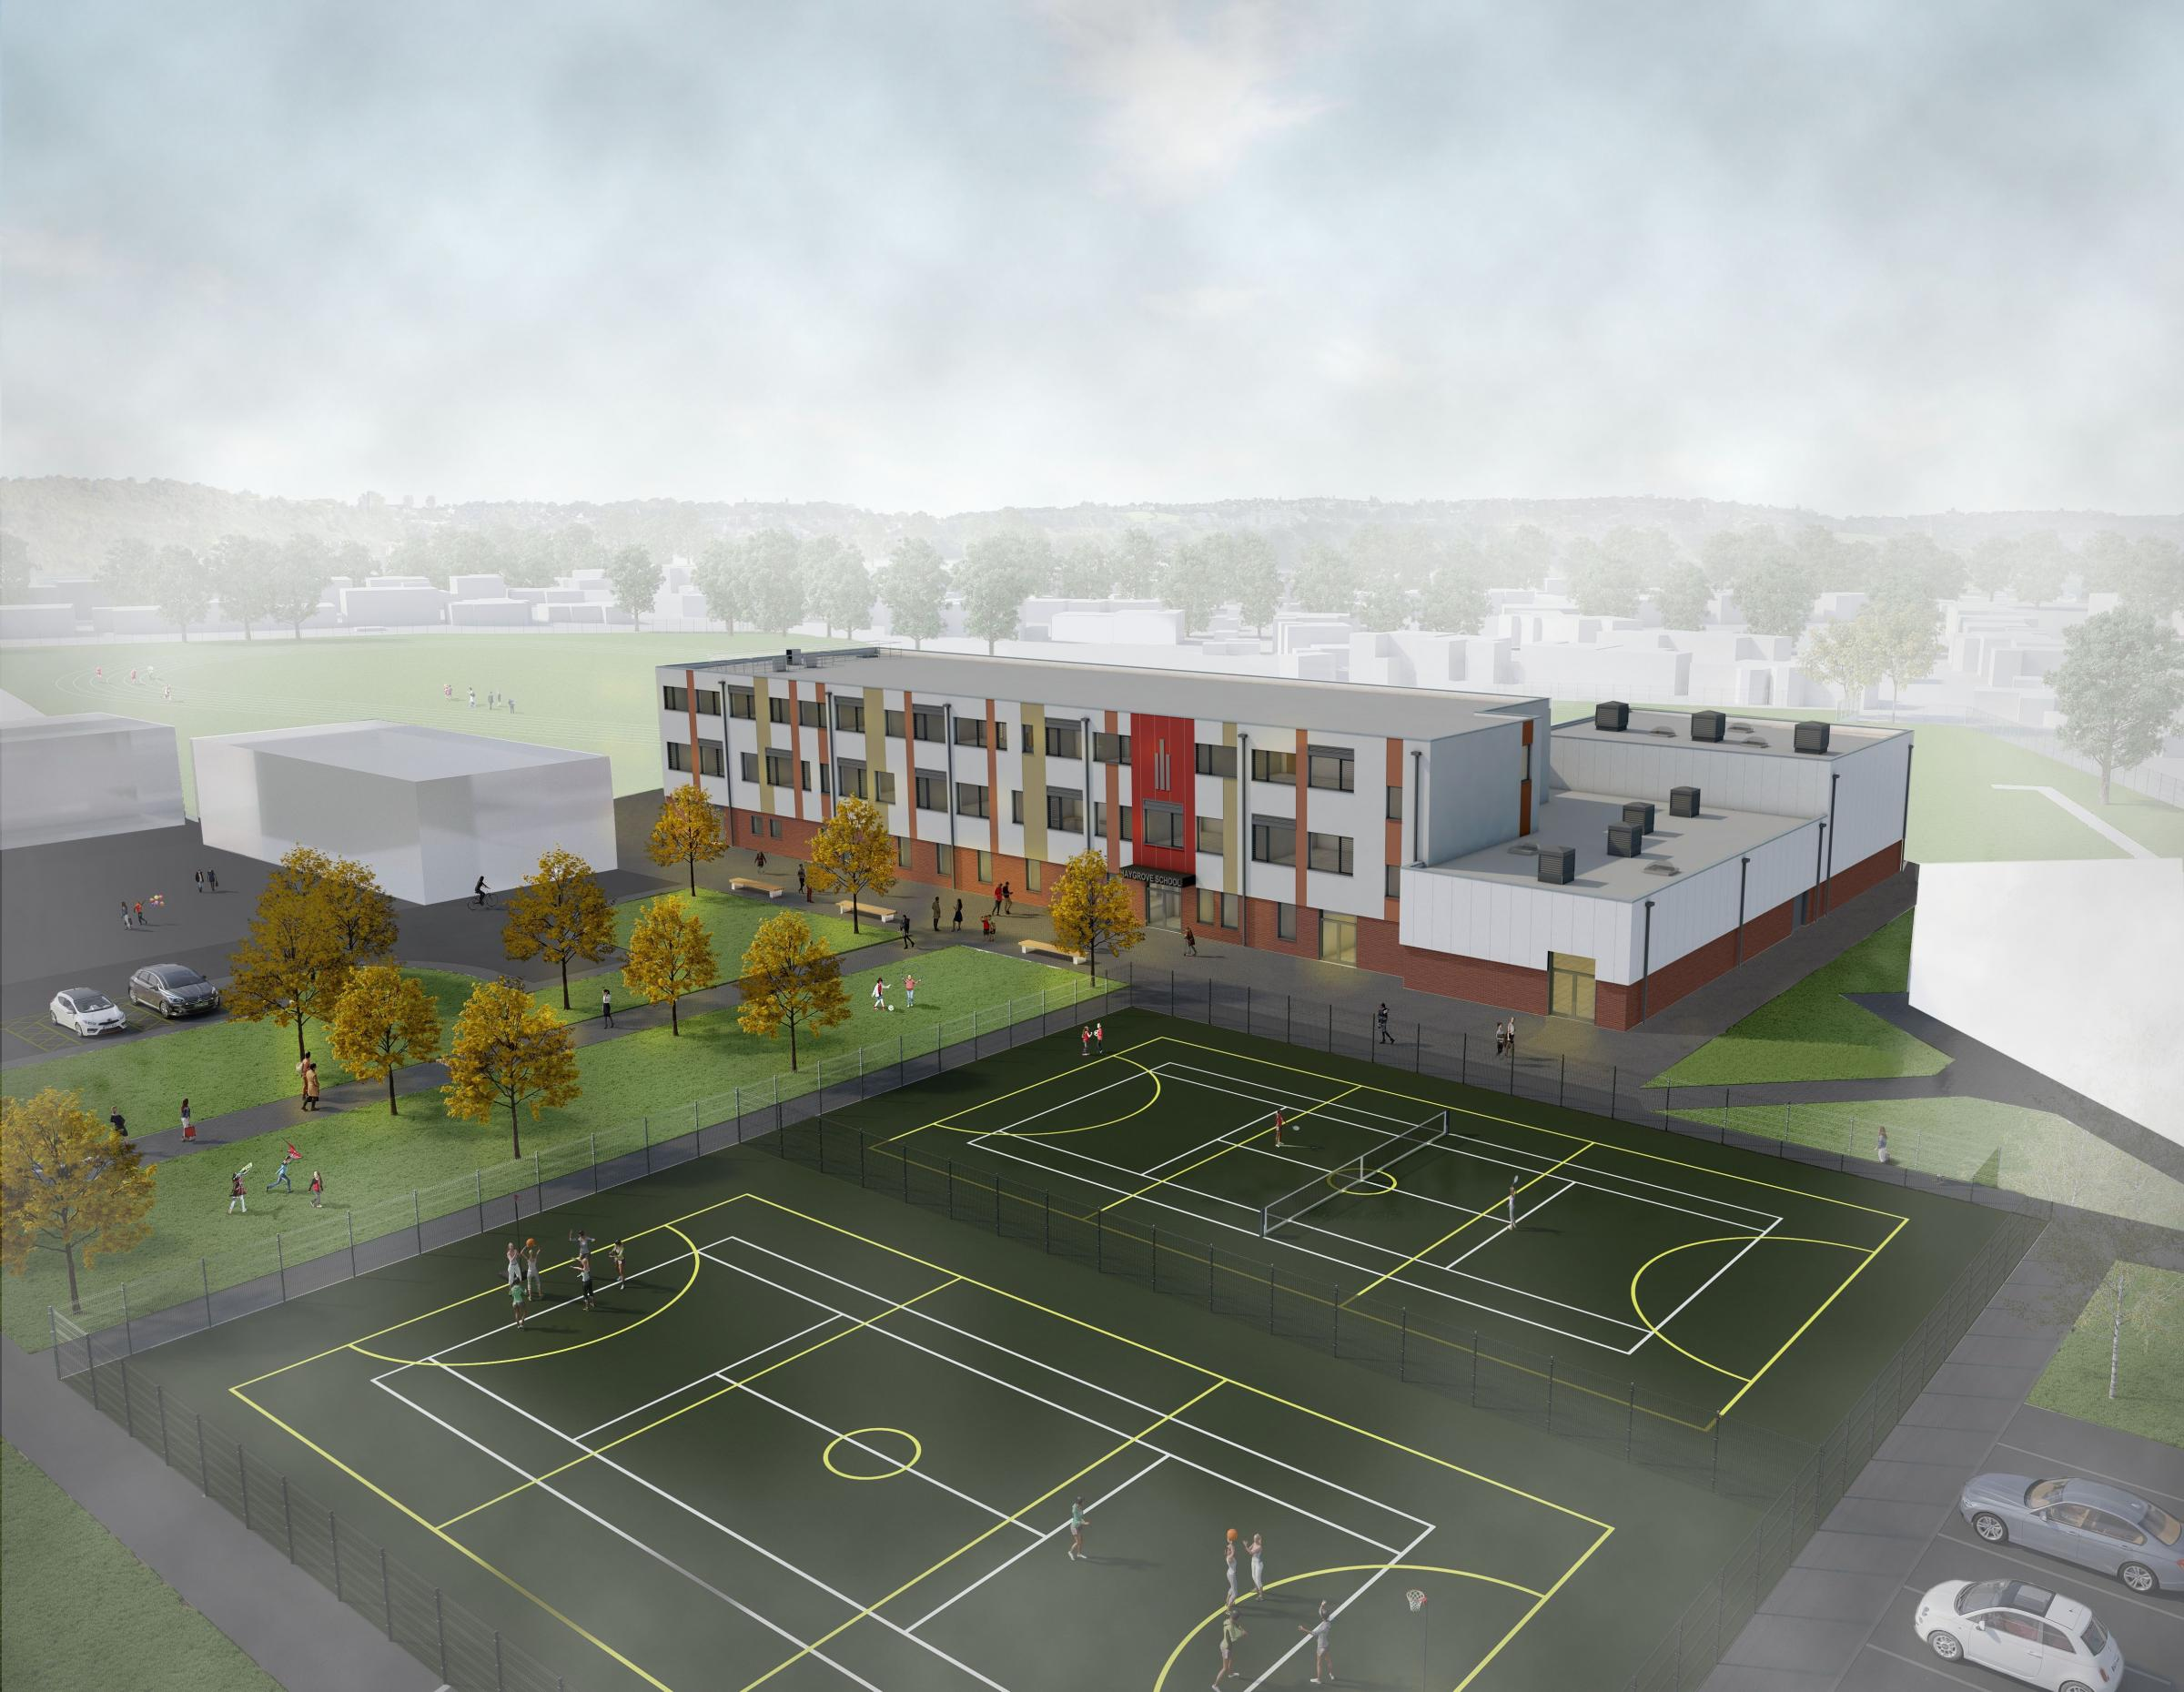 DEVELOPMENT: An artist's impression of the new main school building